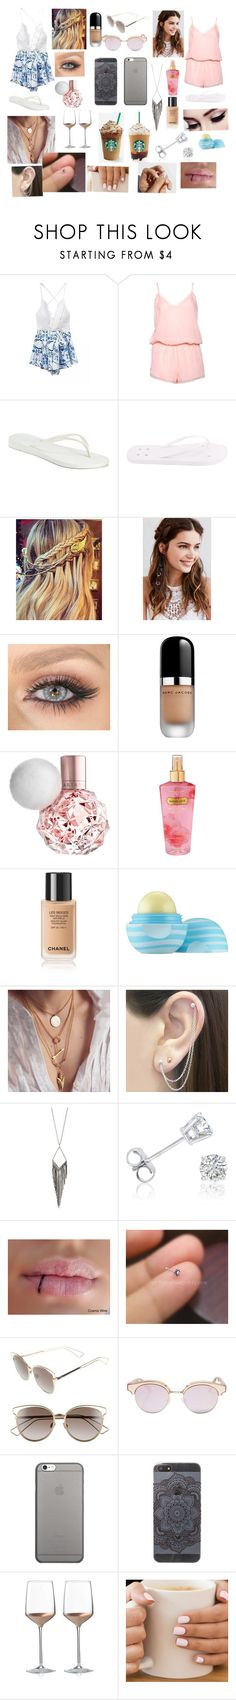 """""""My amazing day with @theycallmepoopey """" by dolphinlover18 ❤ liked on Polyvore featuring Boux Avenue, Havaianas, Rick Owens, REGALROSE, Marc Jacobs, Victoria's Secret, Eos, Otis Jaxon, Jules Smith and Amanda Rose Collection"""